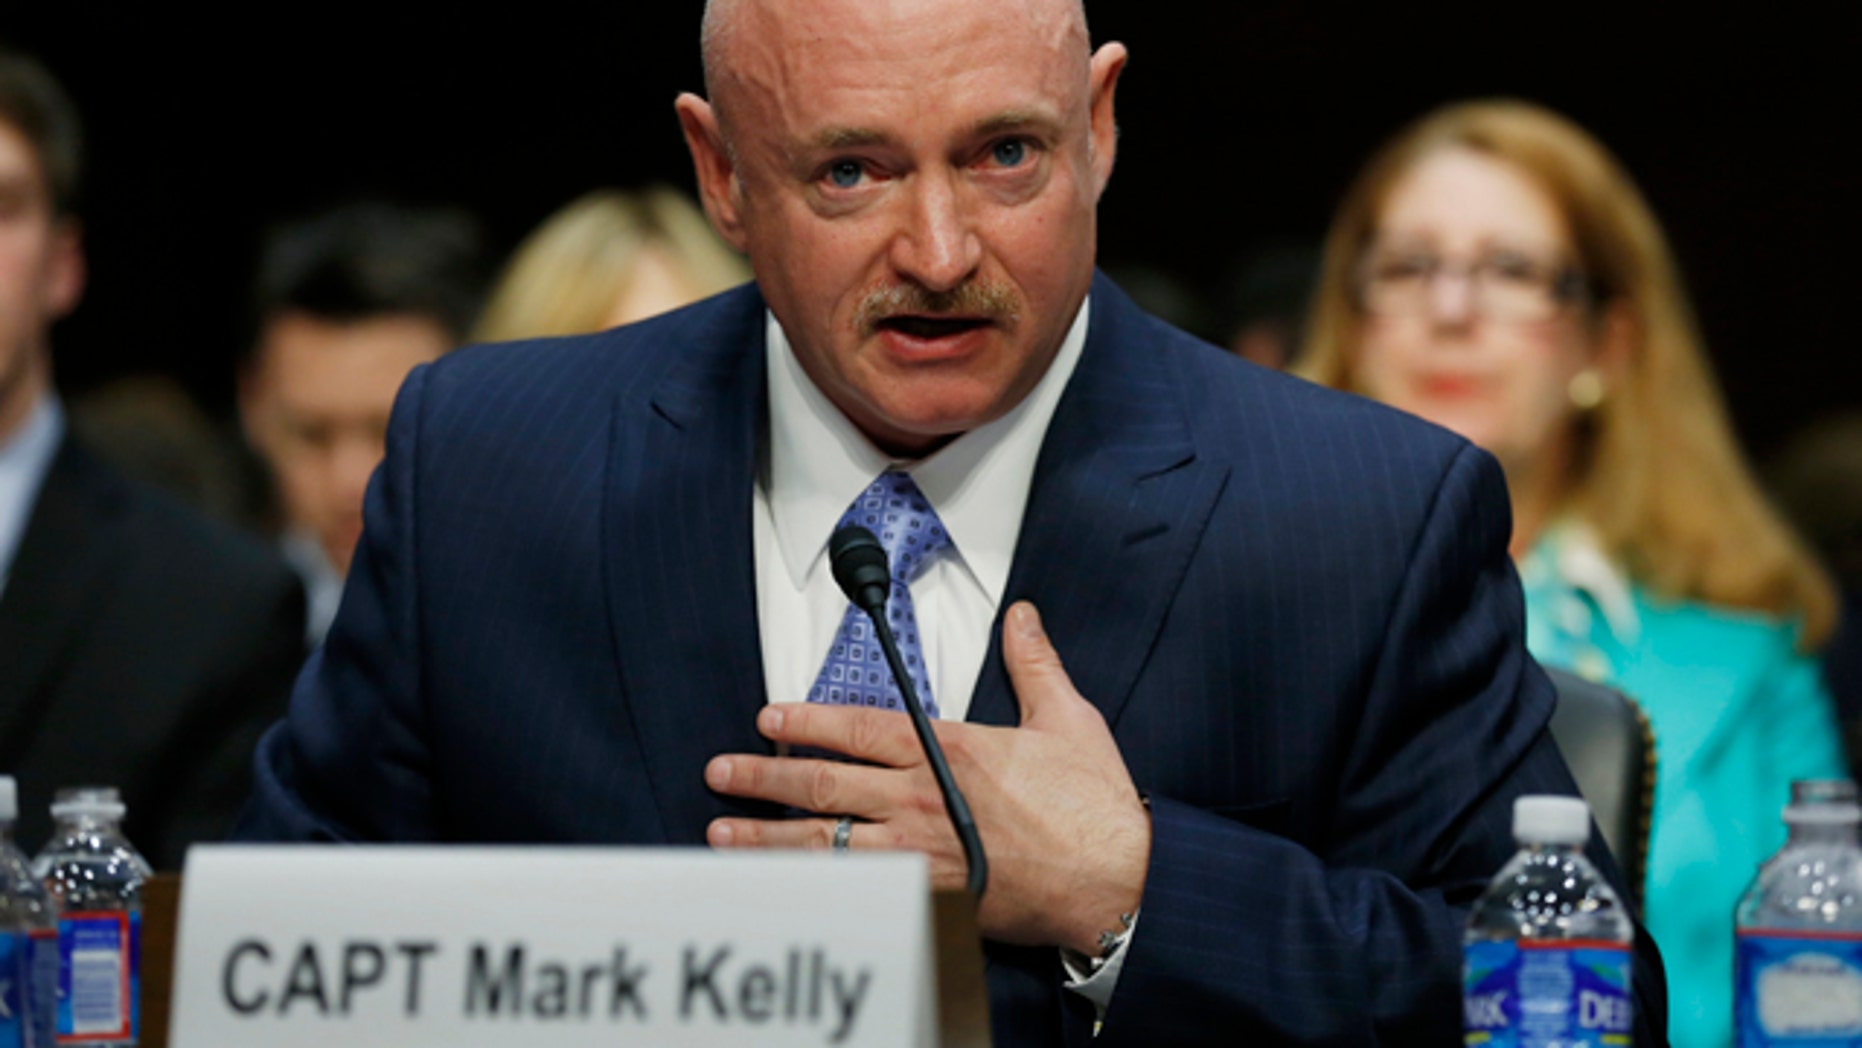 Jan. 30, 2013: Mark Kelly, the husband of former Rep. Gabrielle Giffords, testifies during a hearing held by the Senate Judiciary committee about guns and violence on Capitol Hill in Washington.